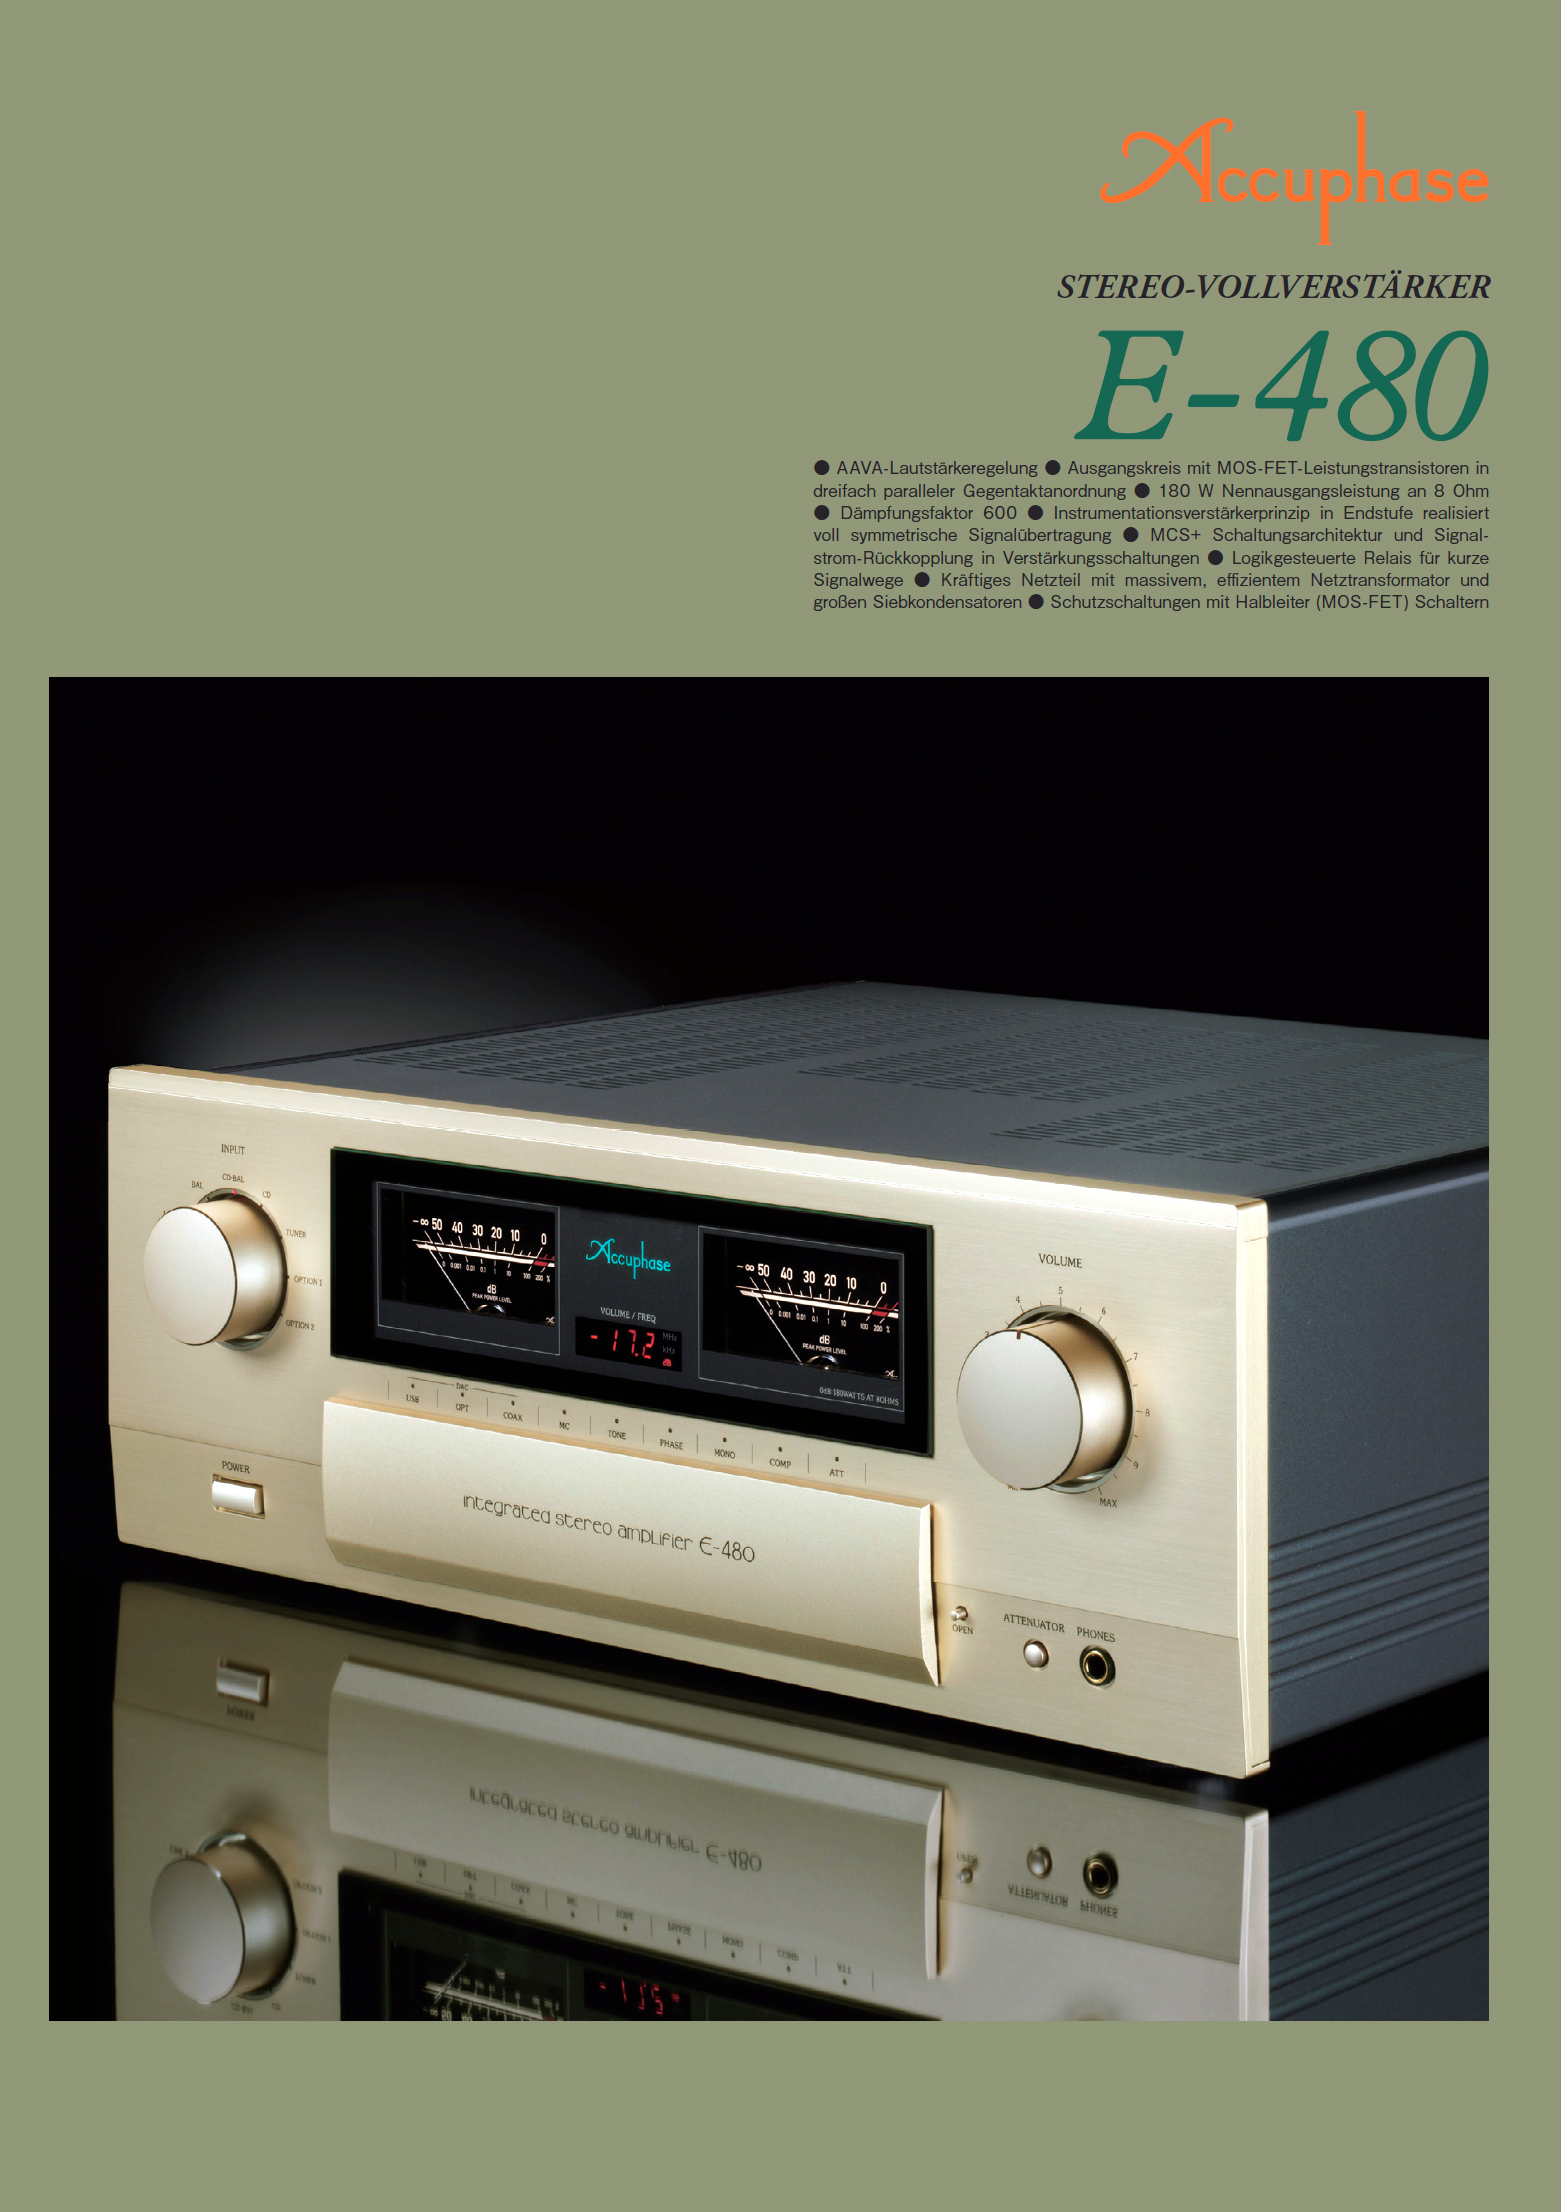 Accuphase E-480-Prospekt-1.jpg